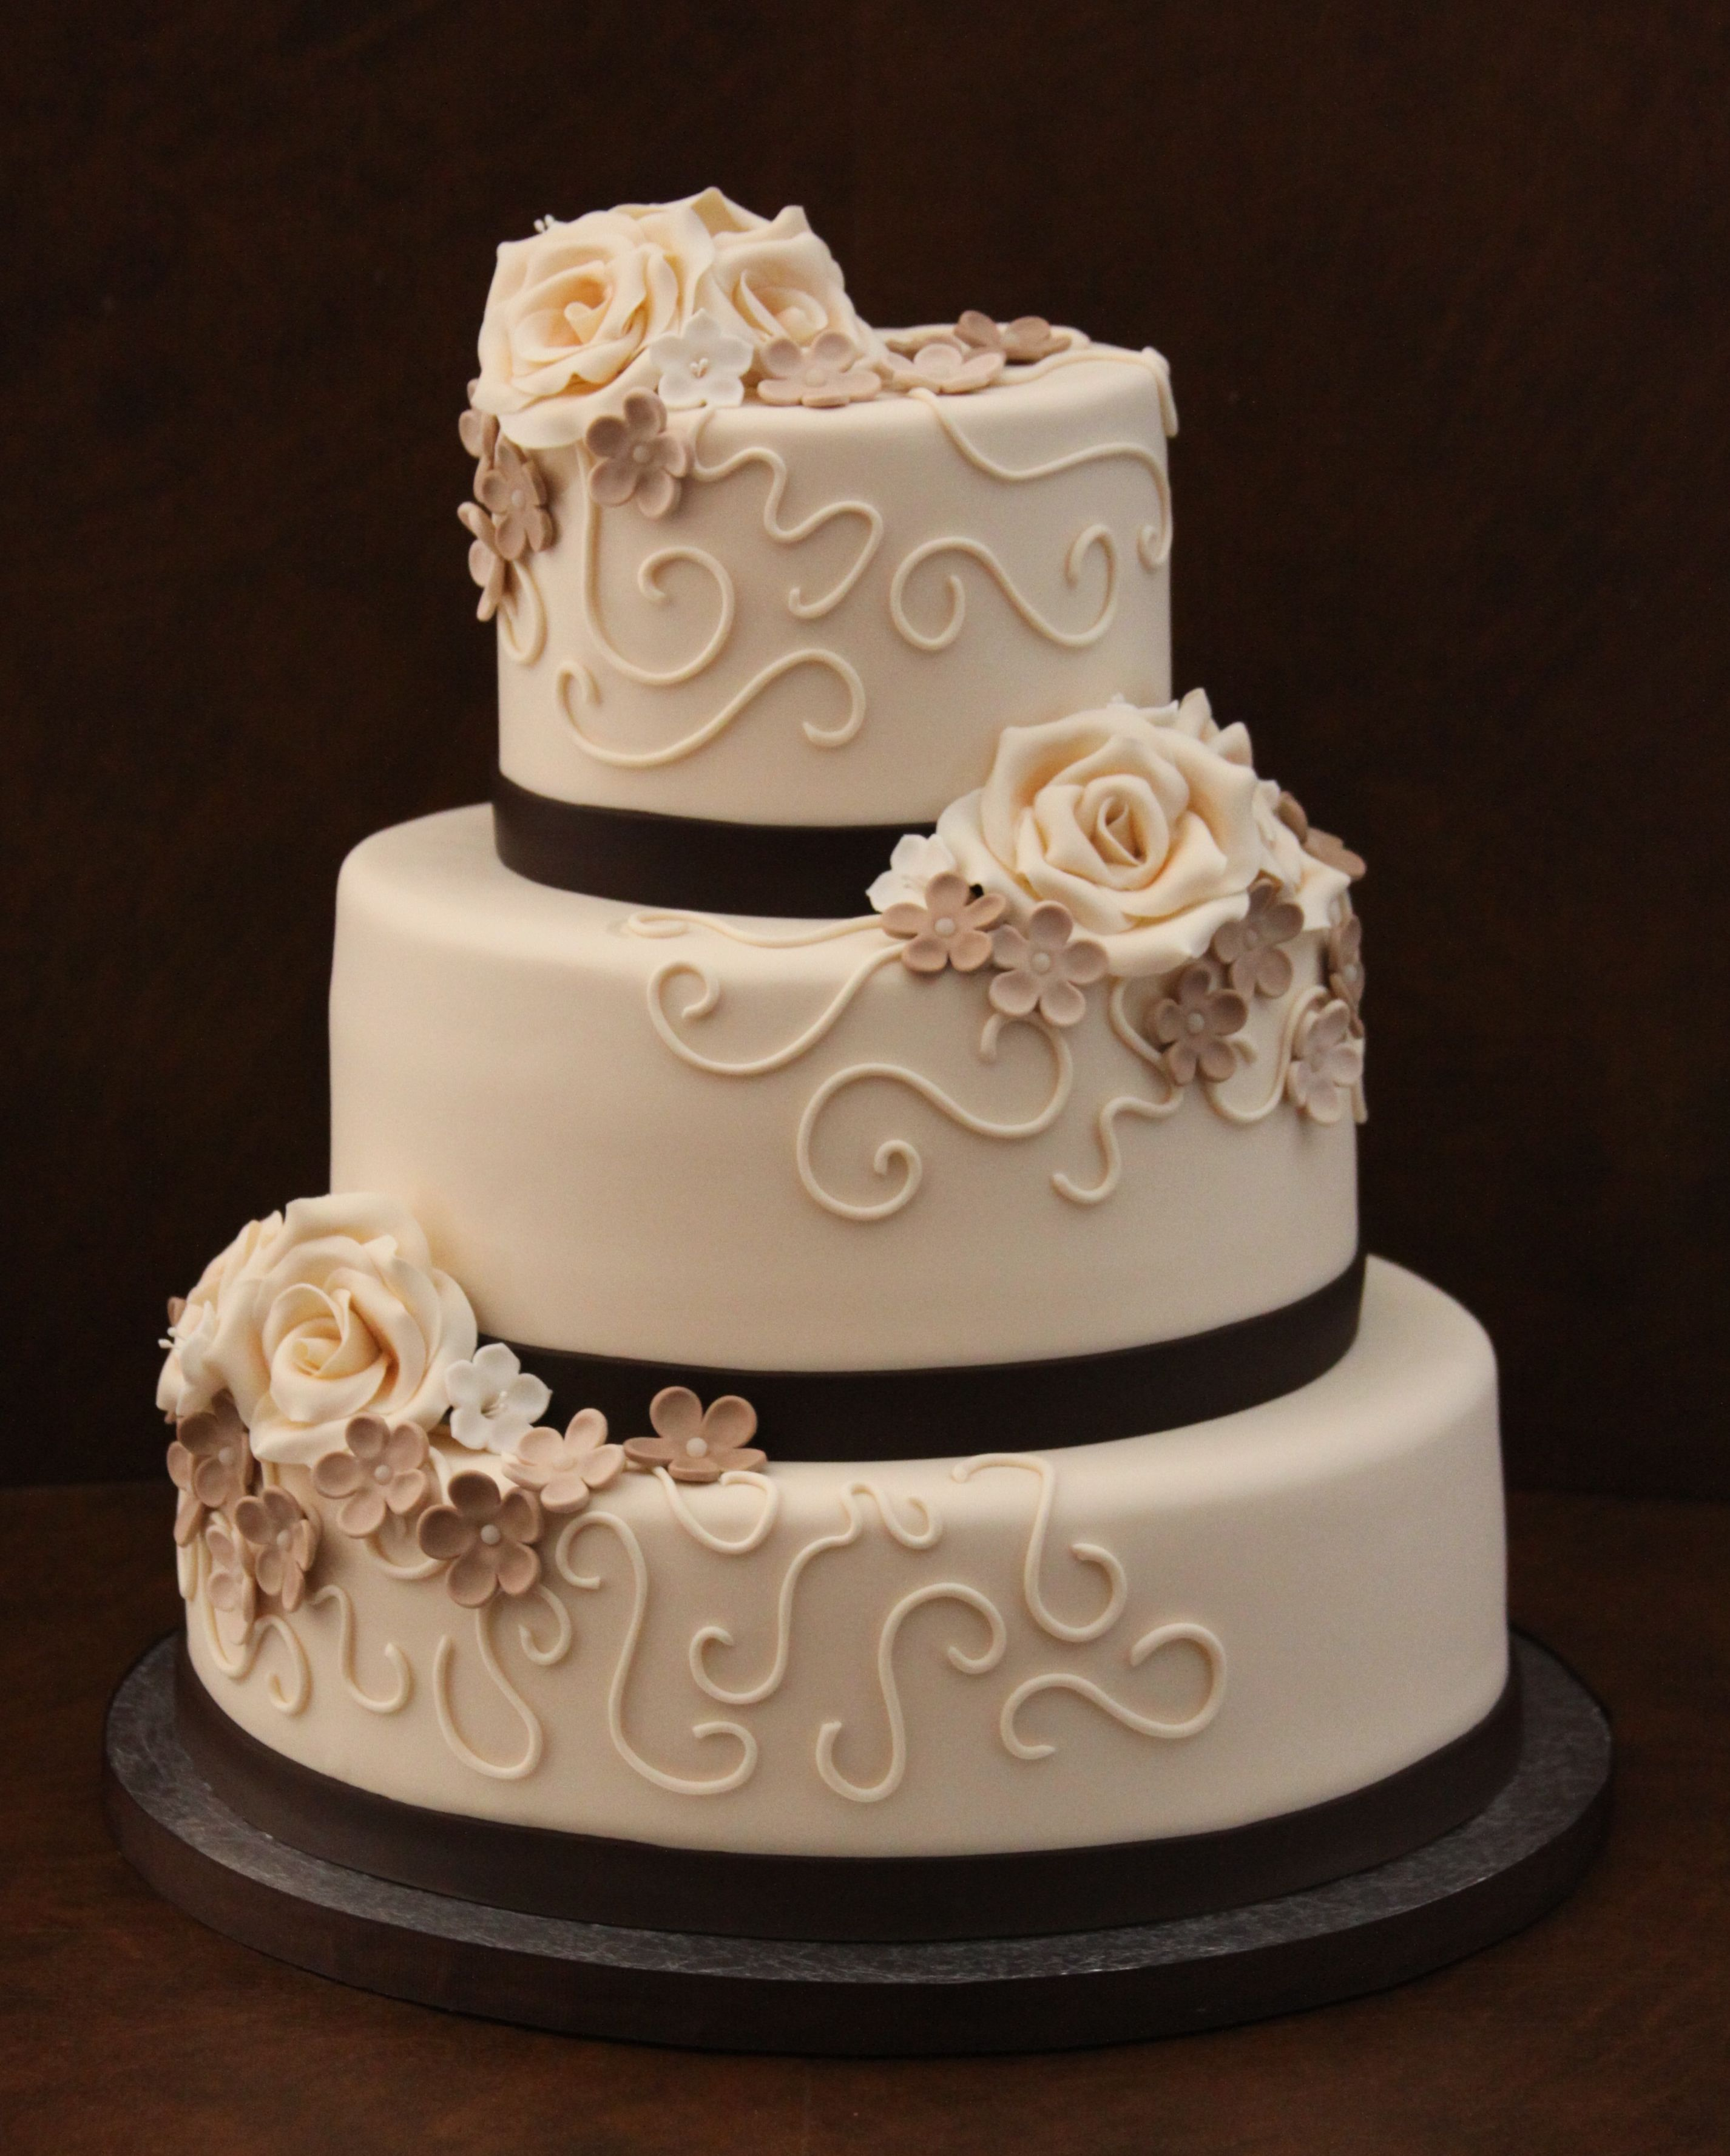 50th Anniversary Cake Was given a photo of this cake and